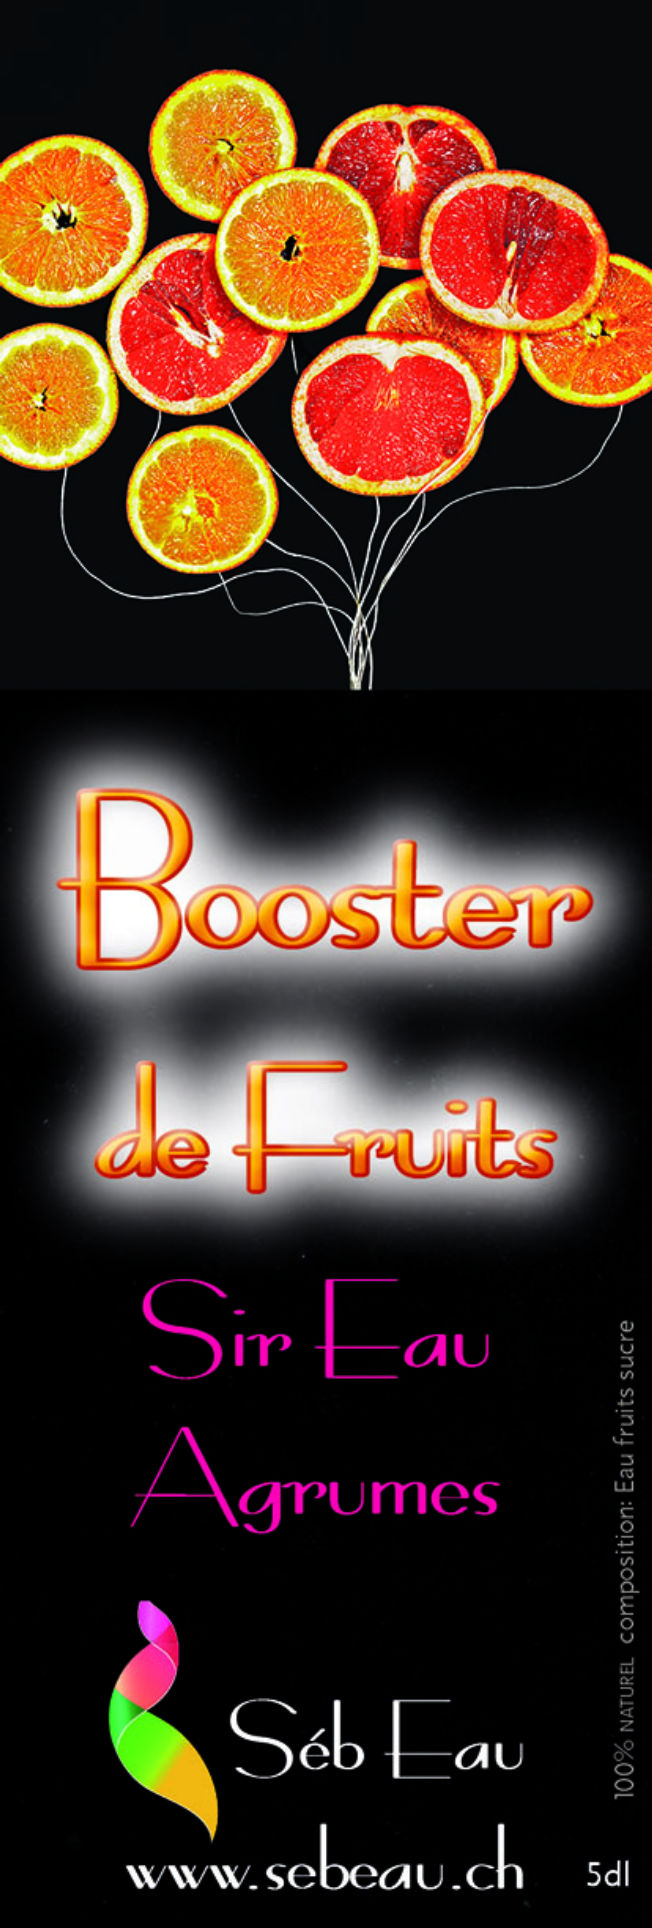 Sireau Booster d'agrumes